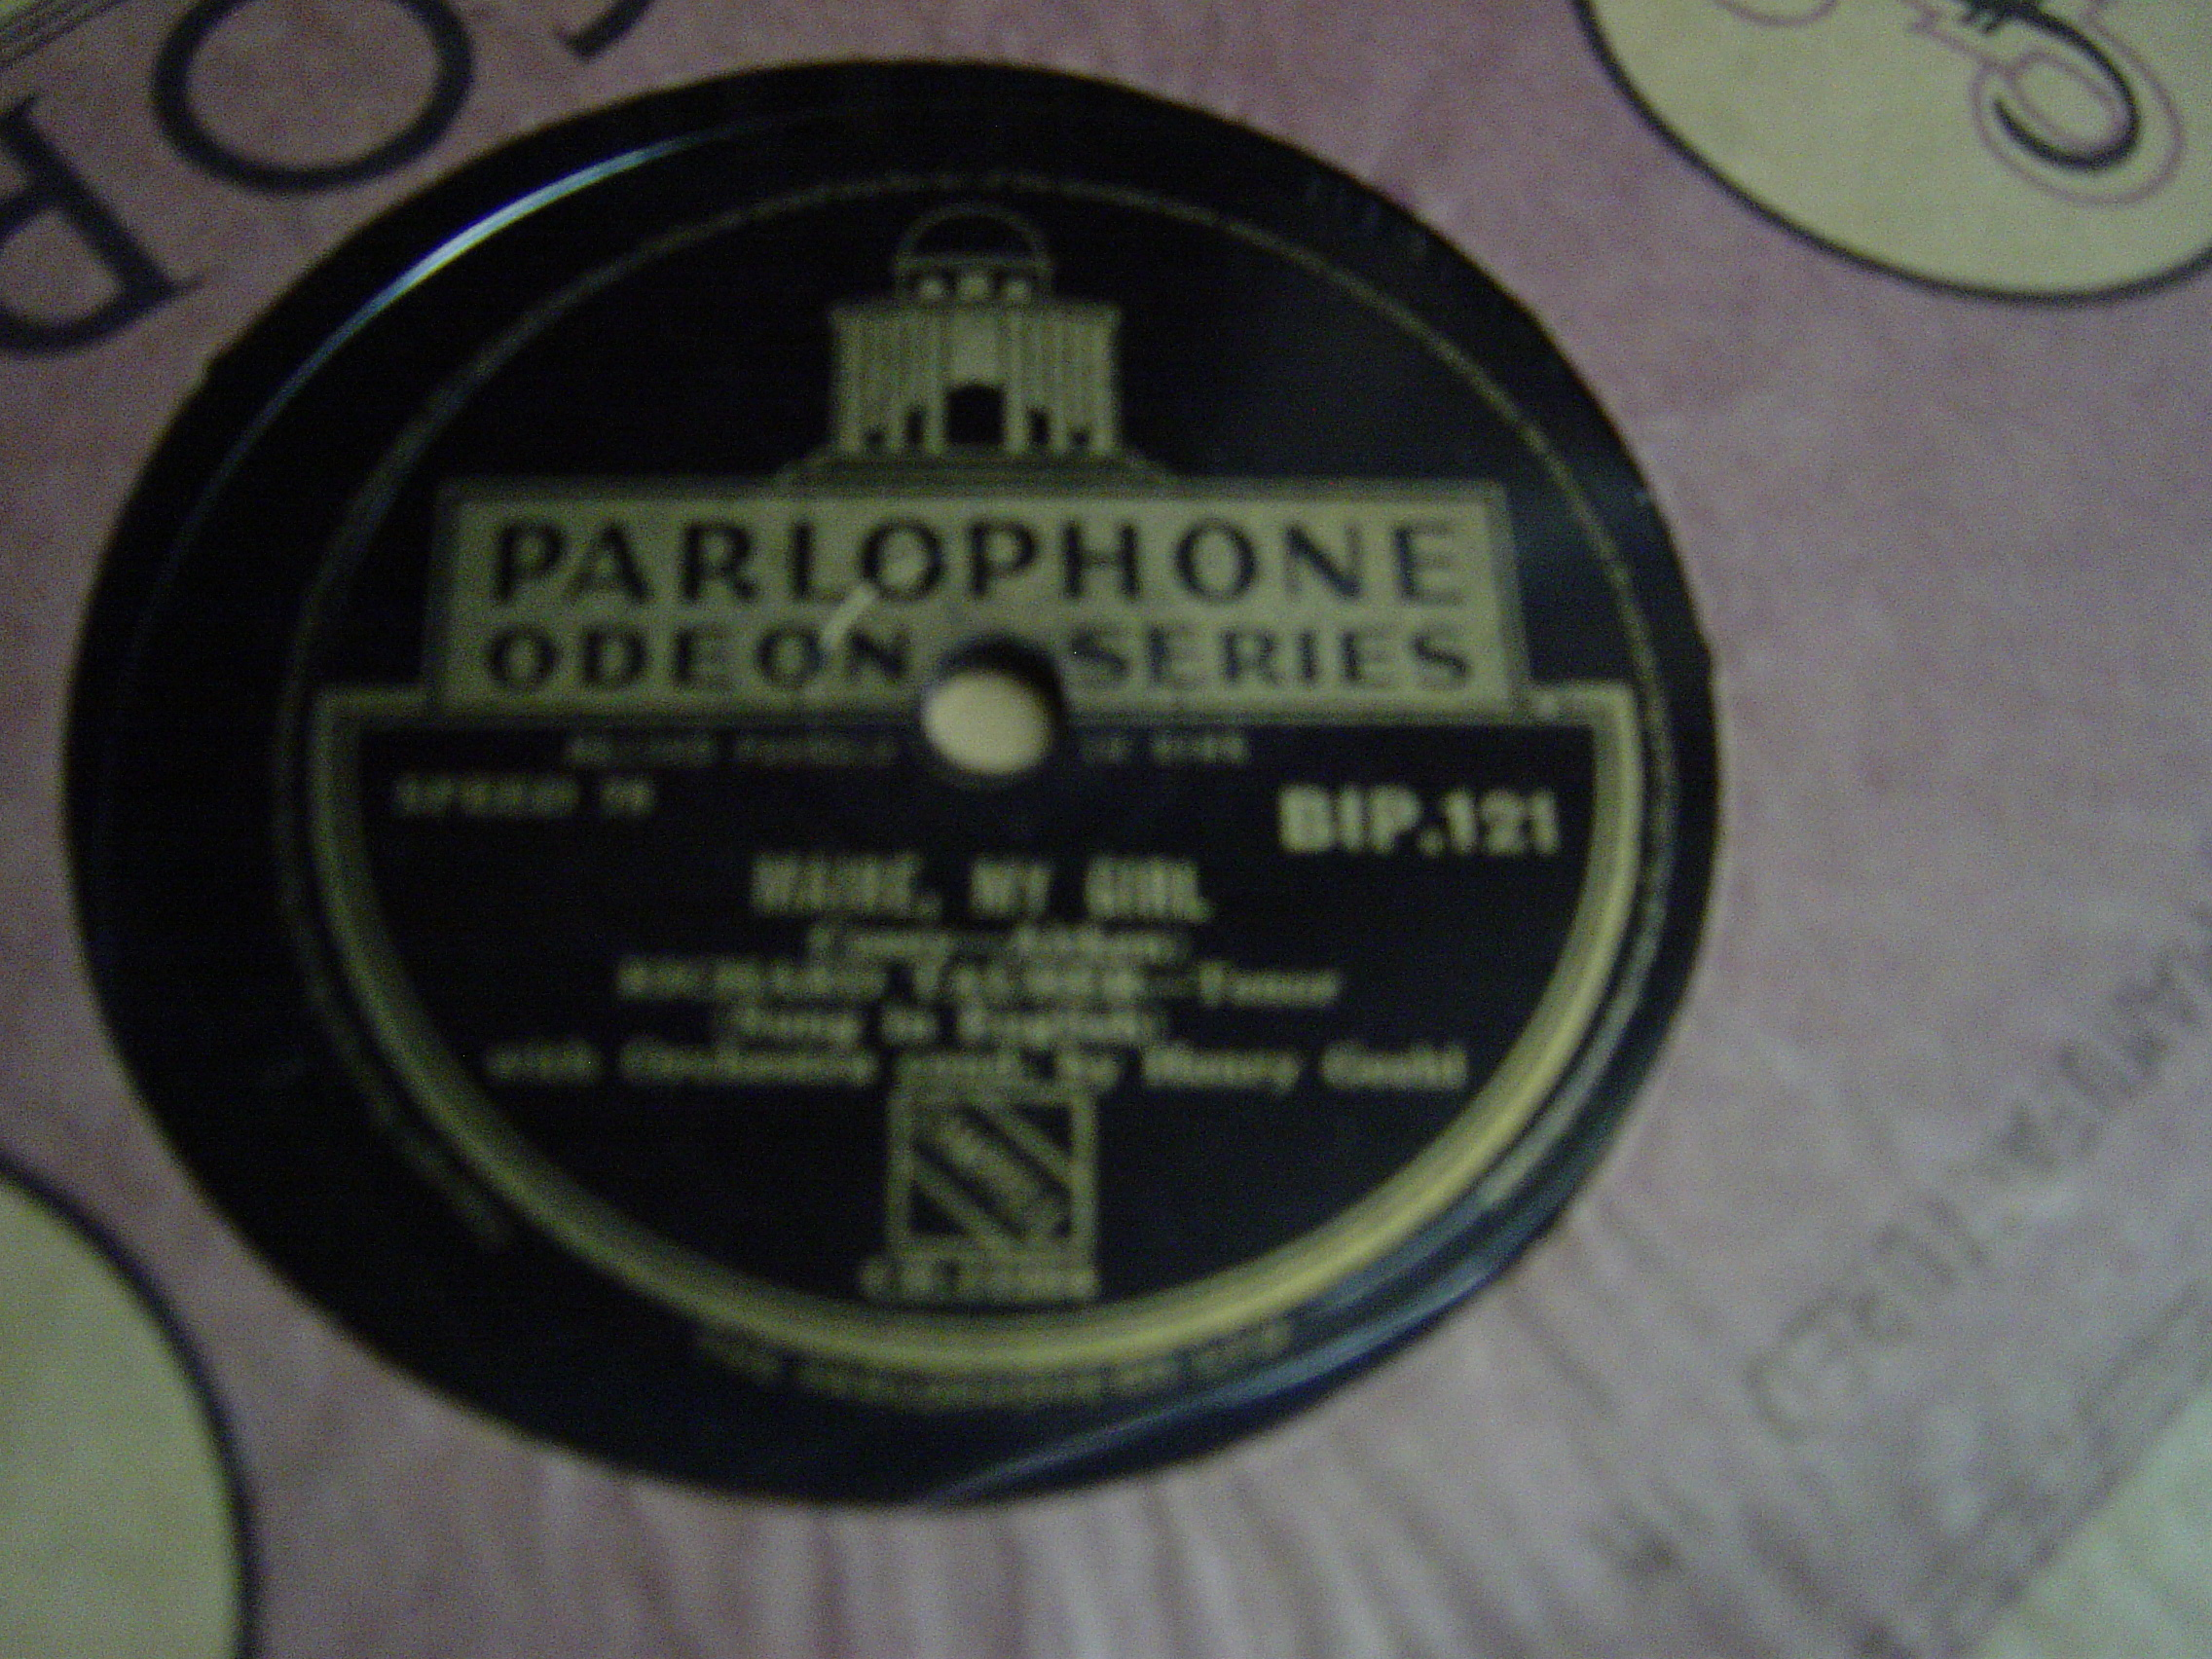 Richard Tauber - Marie my Girl - Parlophone BIP 121